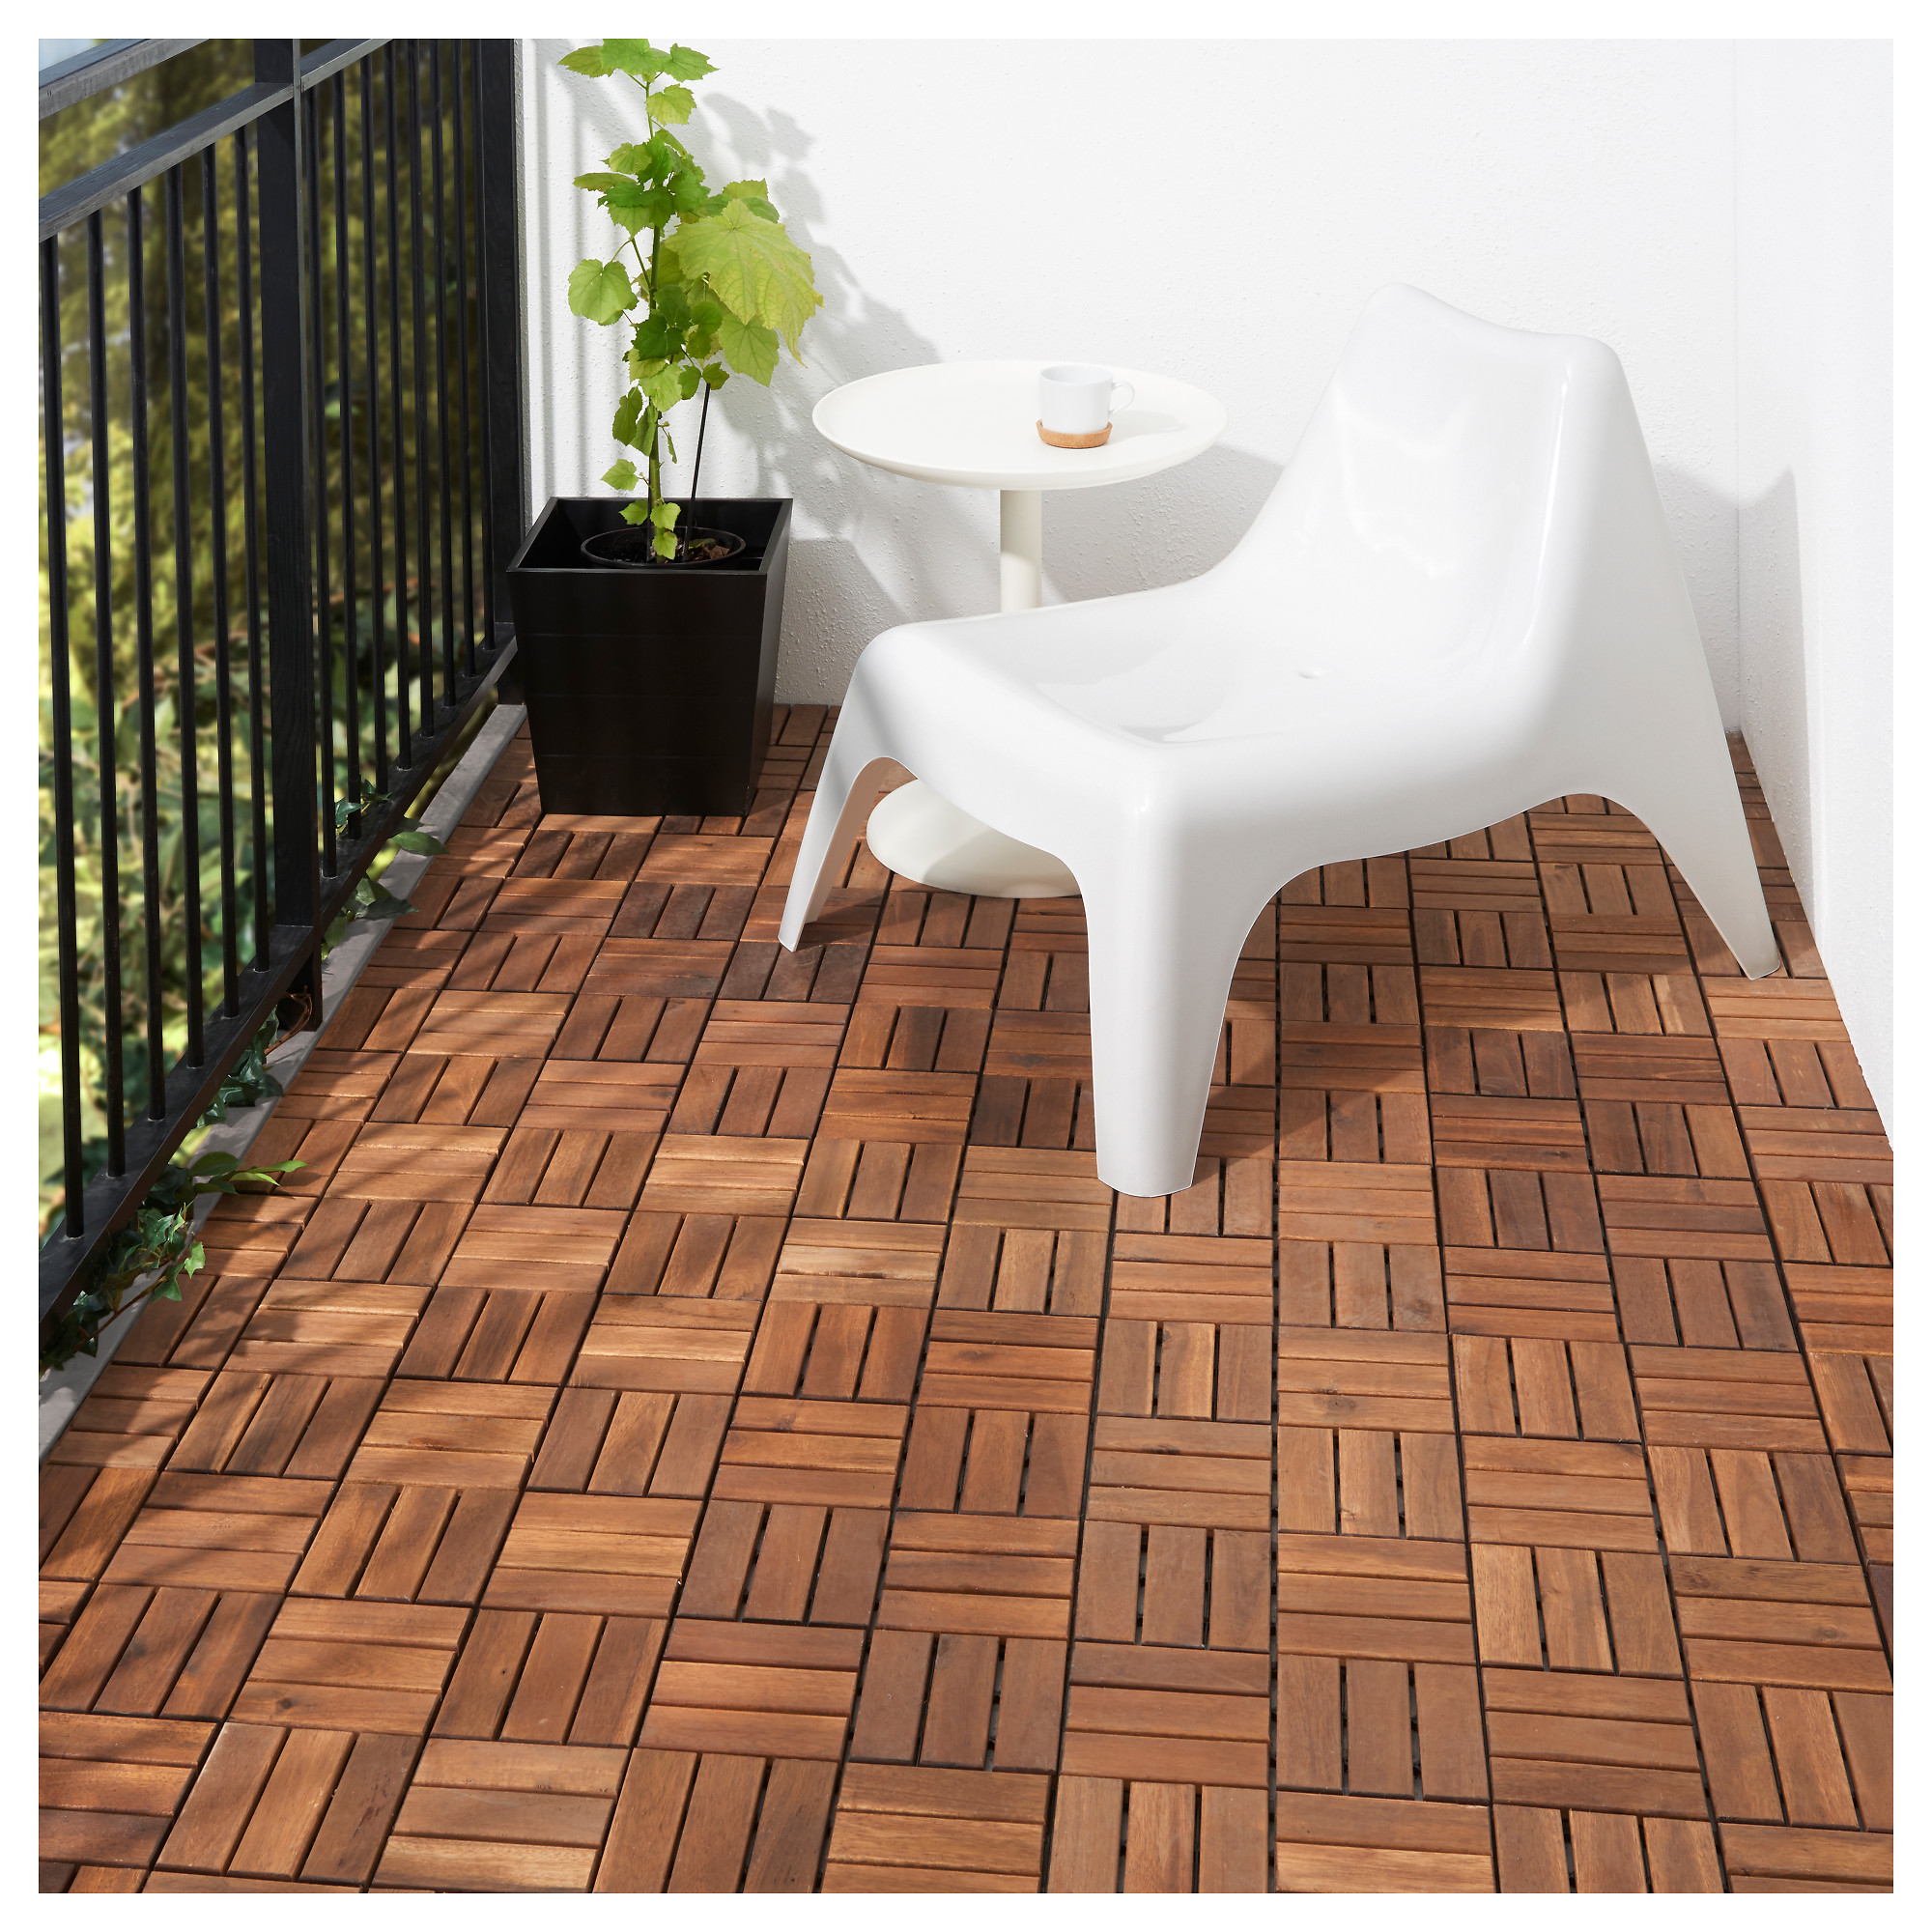 Runnen decking outdoor ikea dailygadgetfo Choice Image